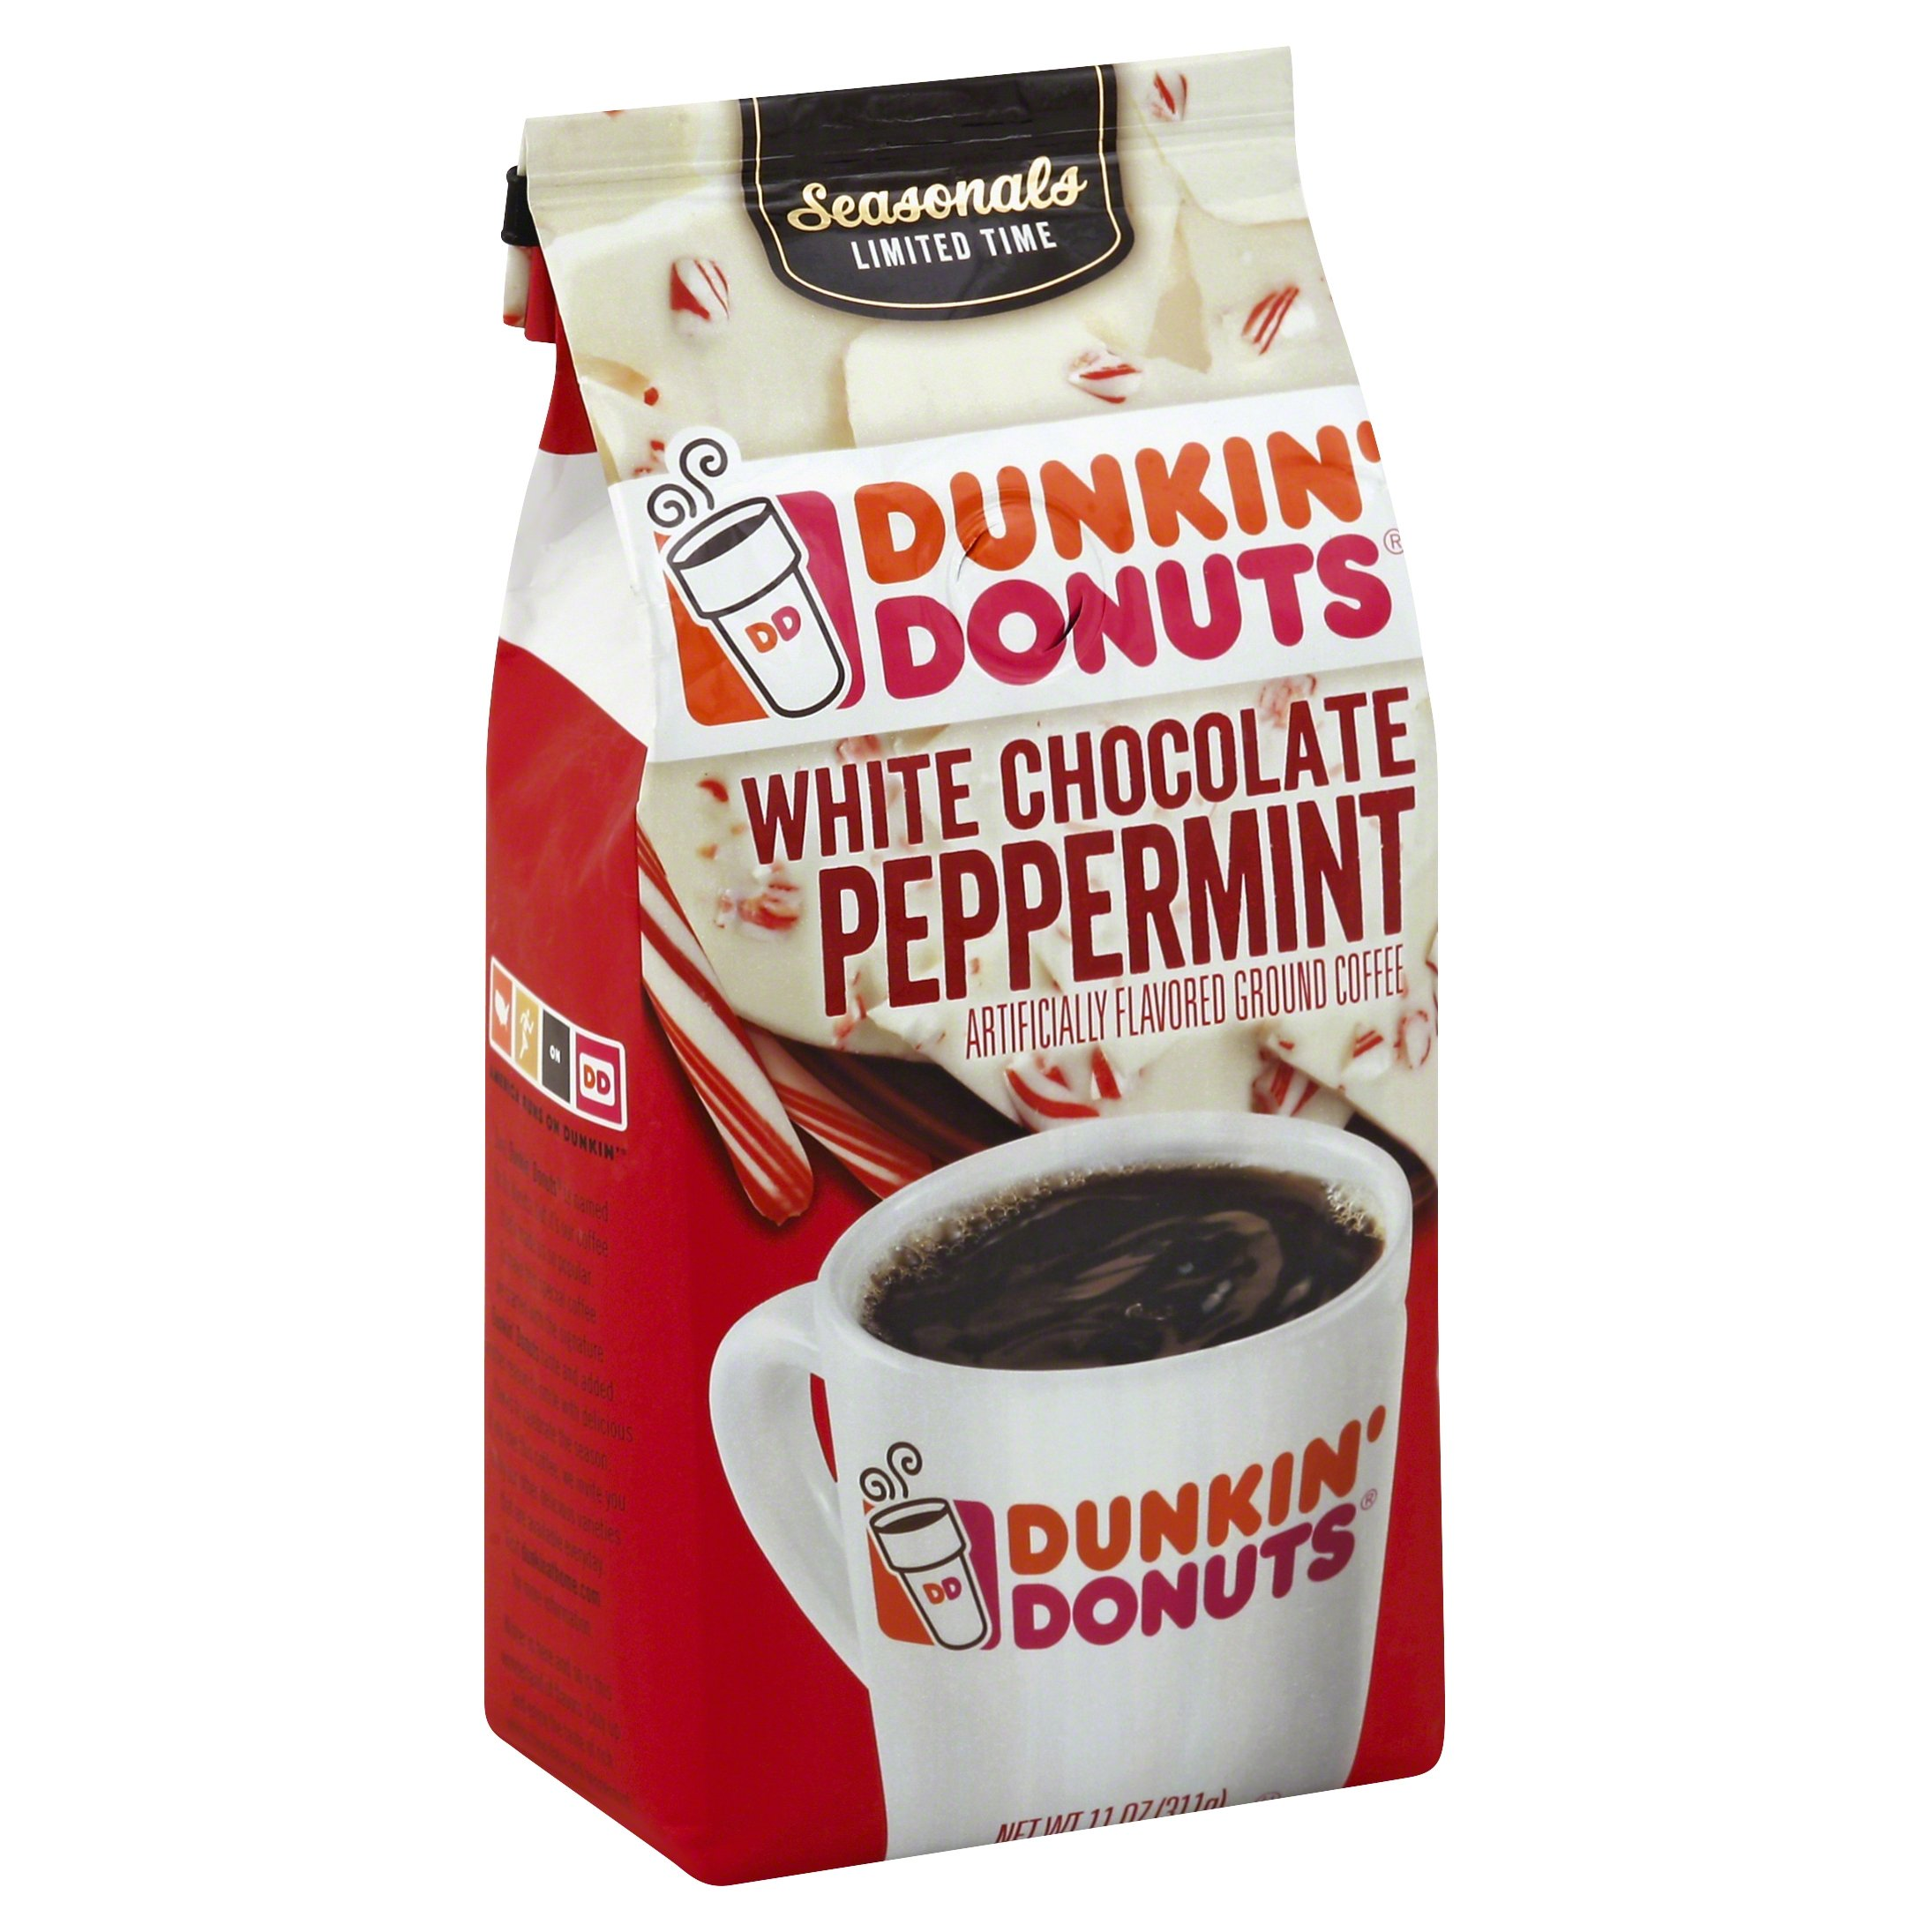 Dunkin' Donuts White Chocolate Peppermint Ground Coffee, Seasonal Limited Time, 11 Ounce, (Pack of 6)